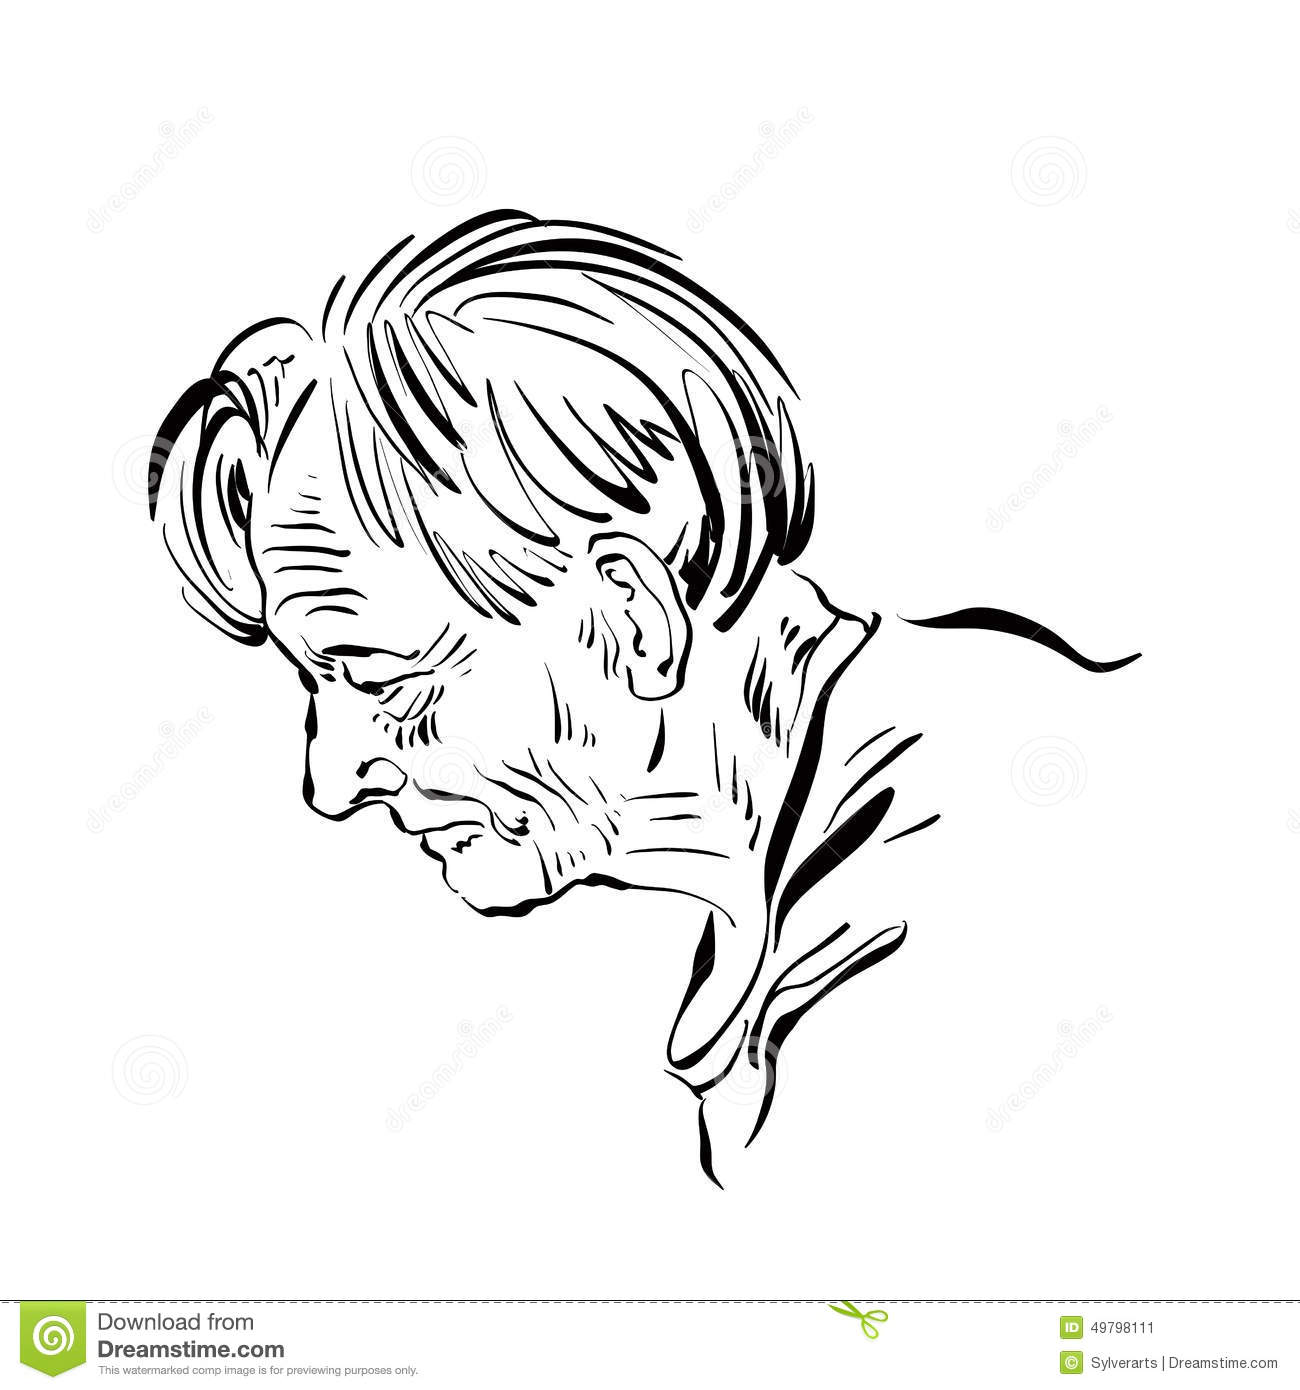 Hand Drawn Illustration Of An Old Man On White Background